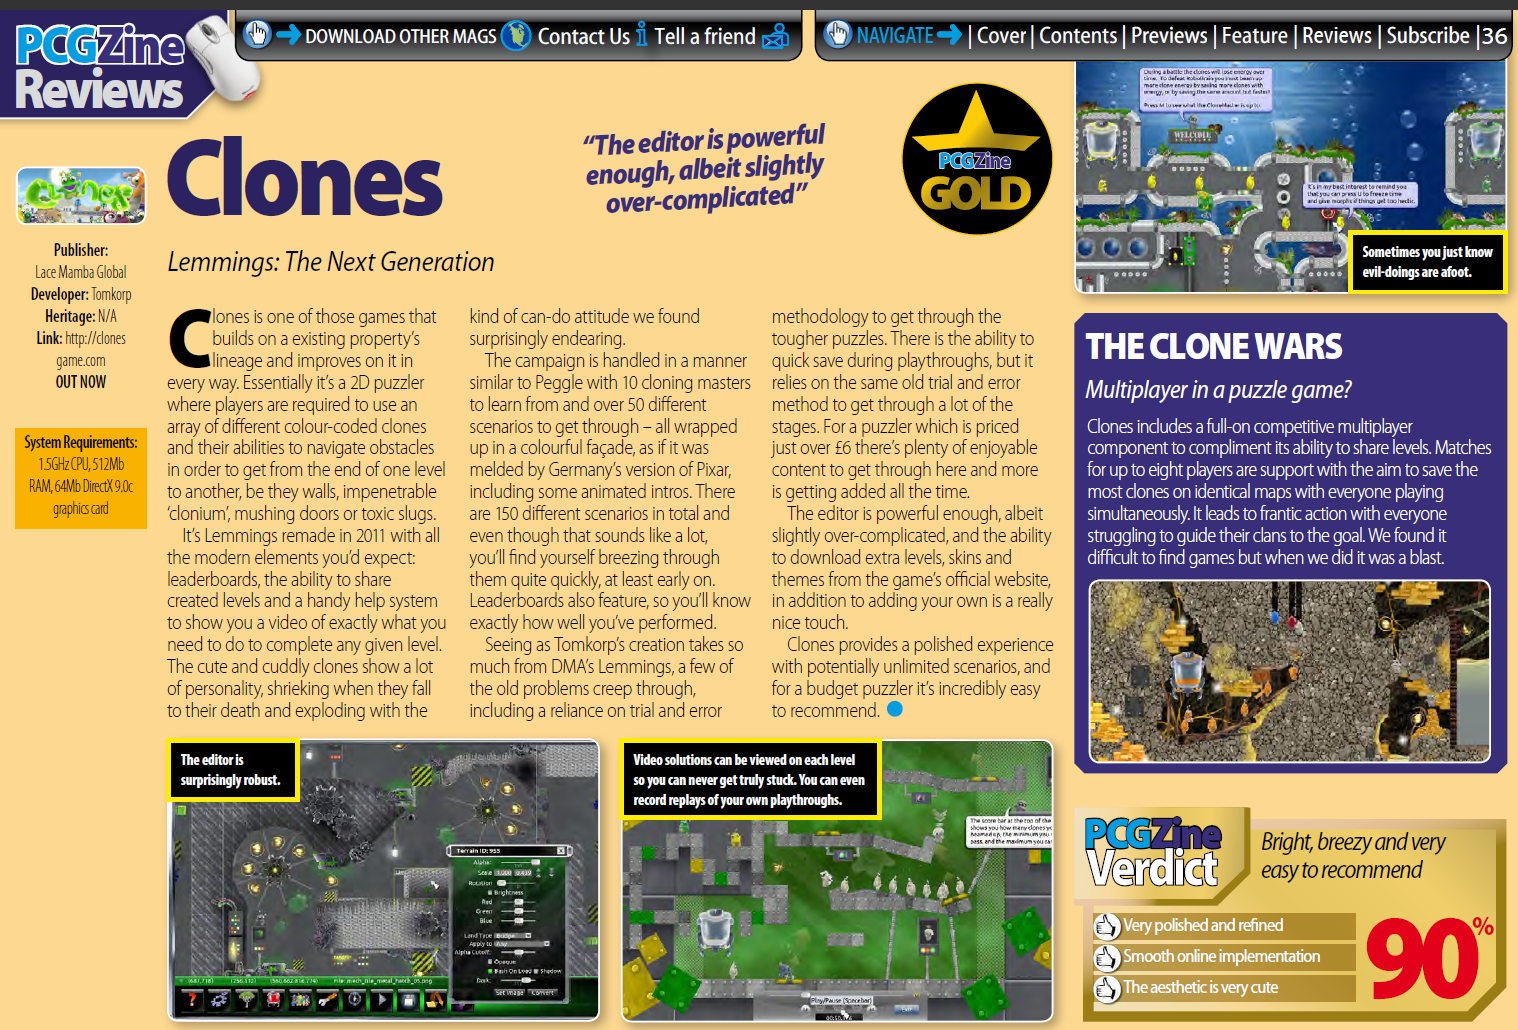 PCGZine-Issue55-Page36-Clones.png